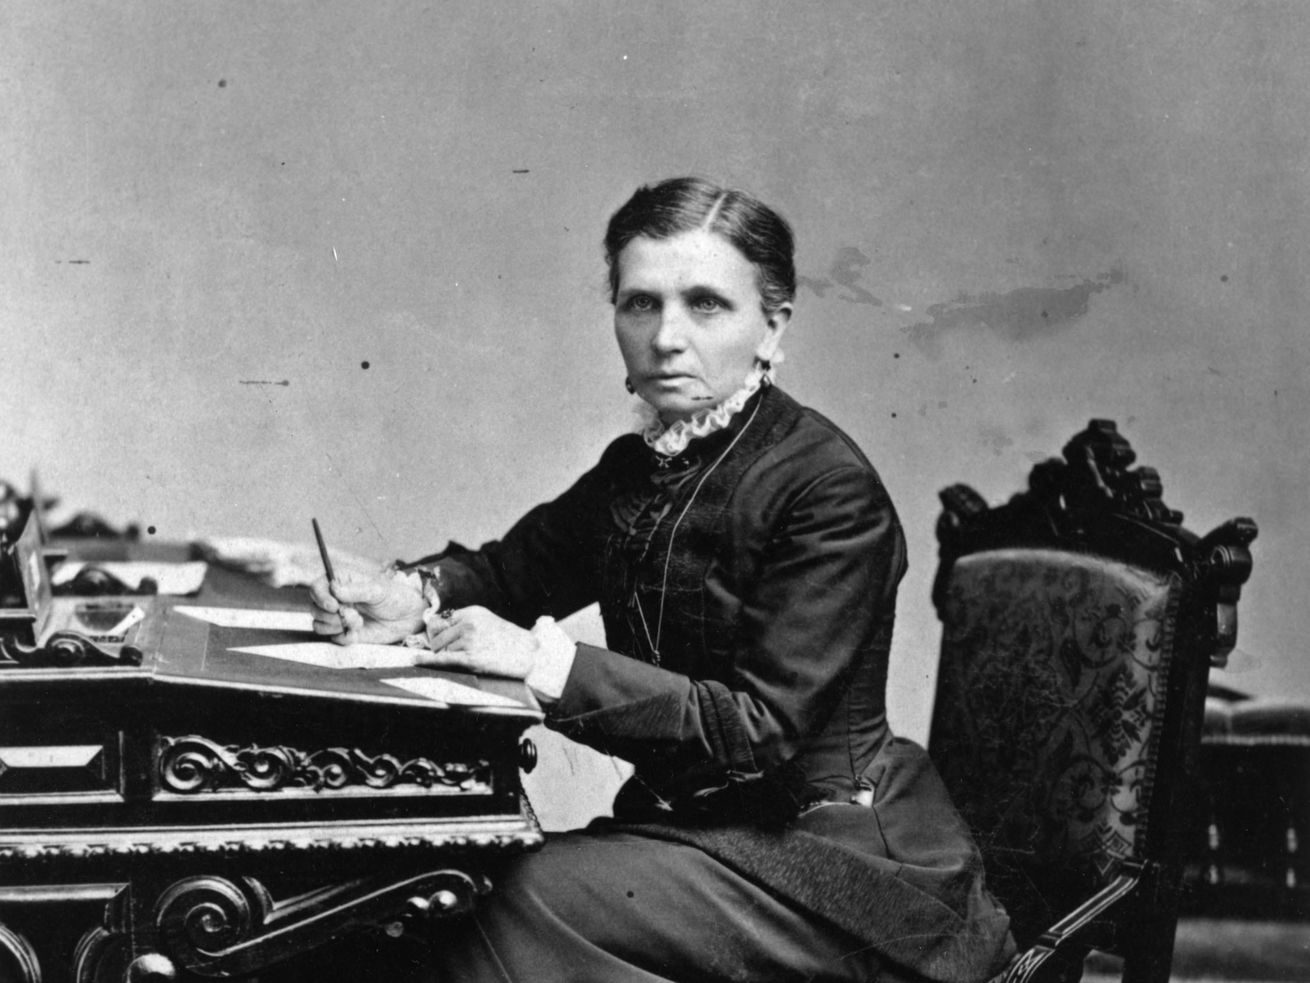 Emmeline B. Wells' diaries open window into life of a Latter-day Saint leader and suffragist